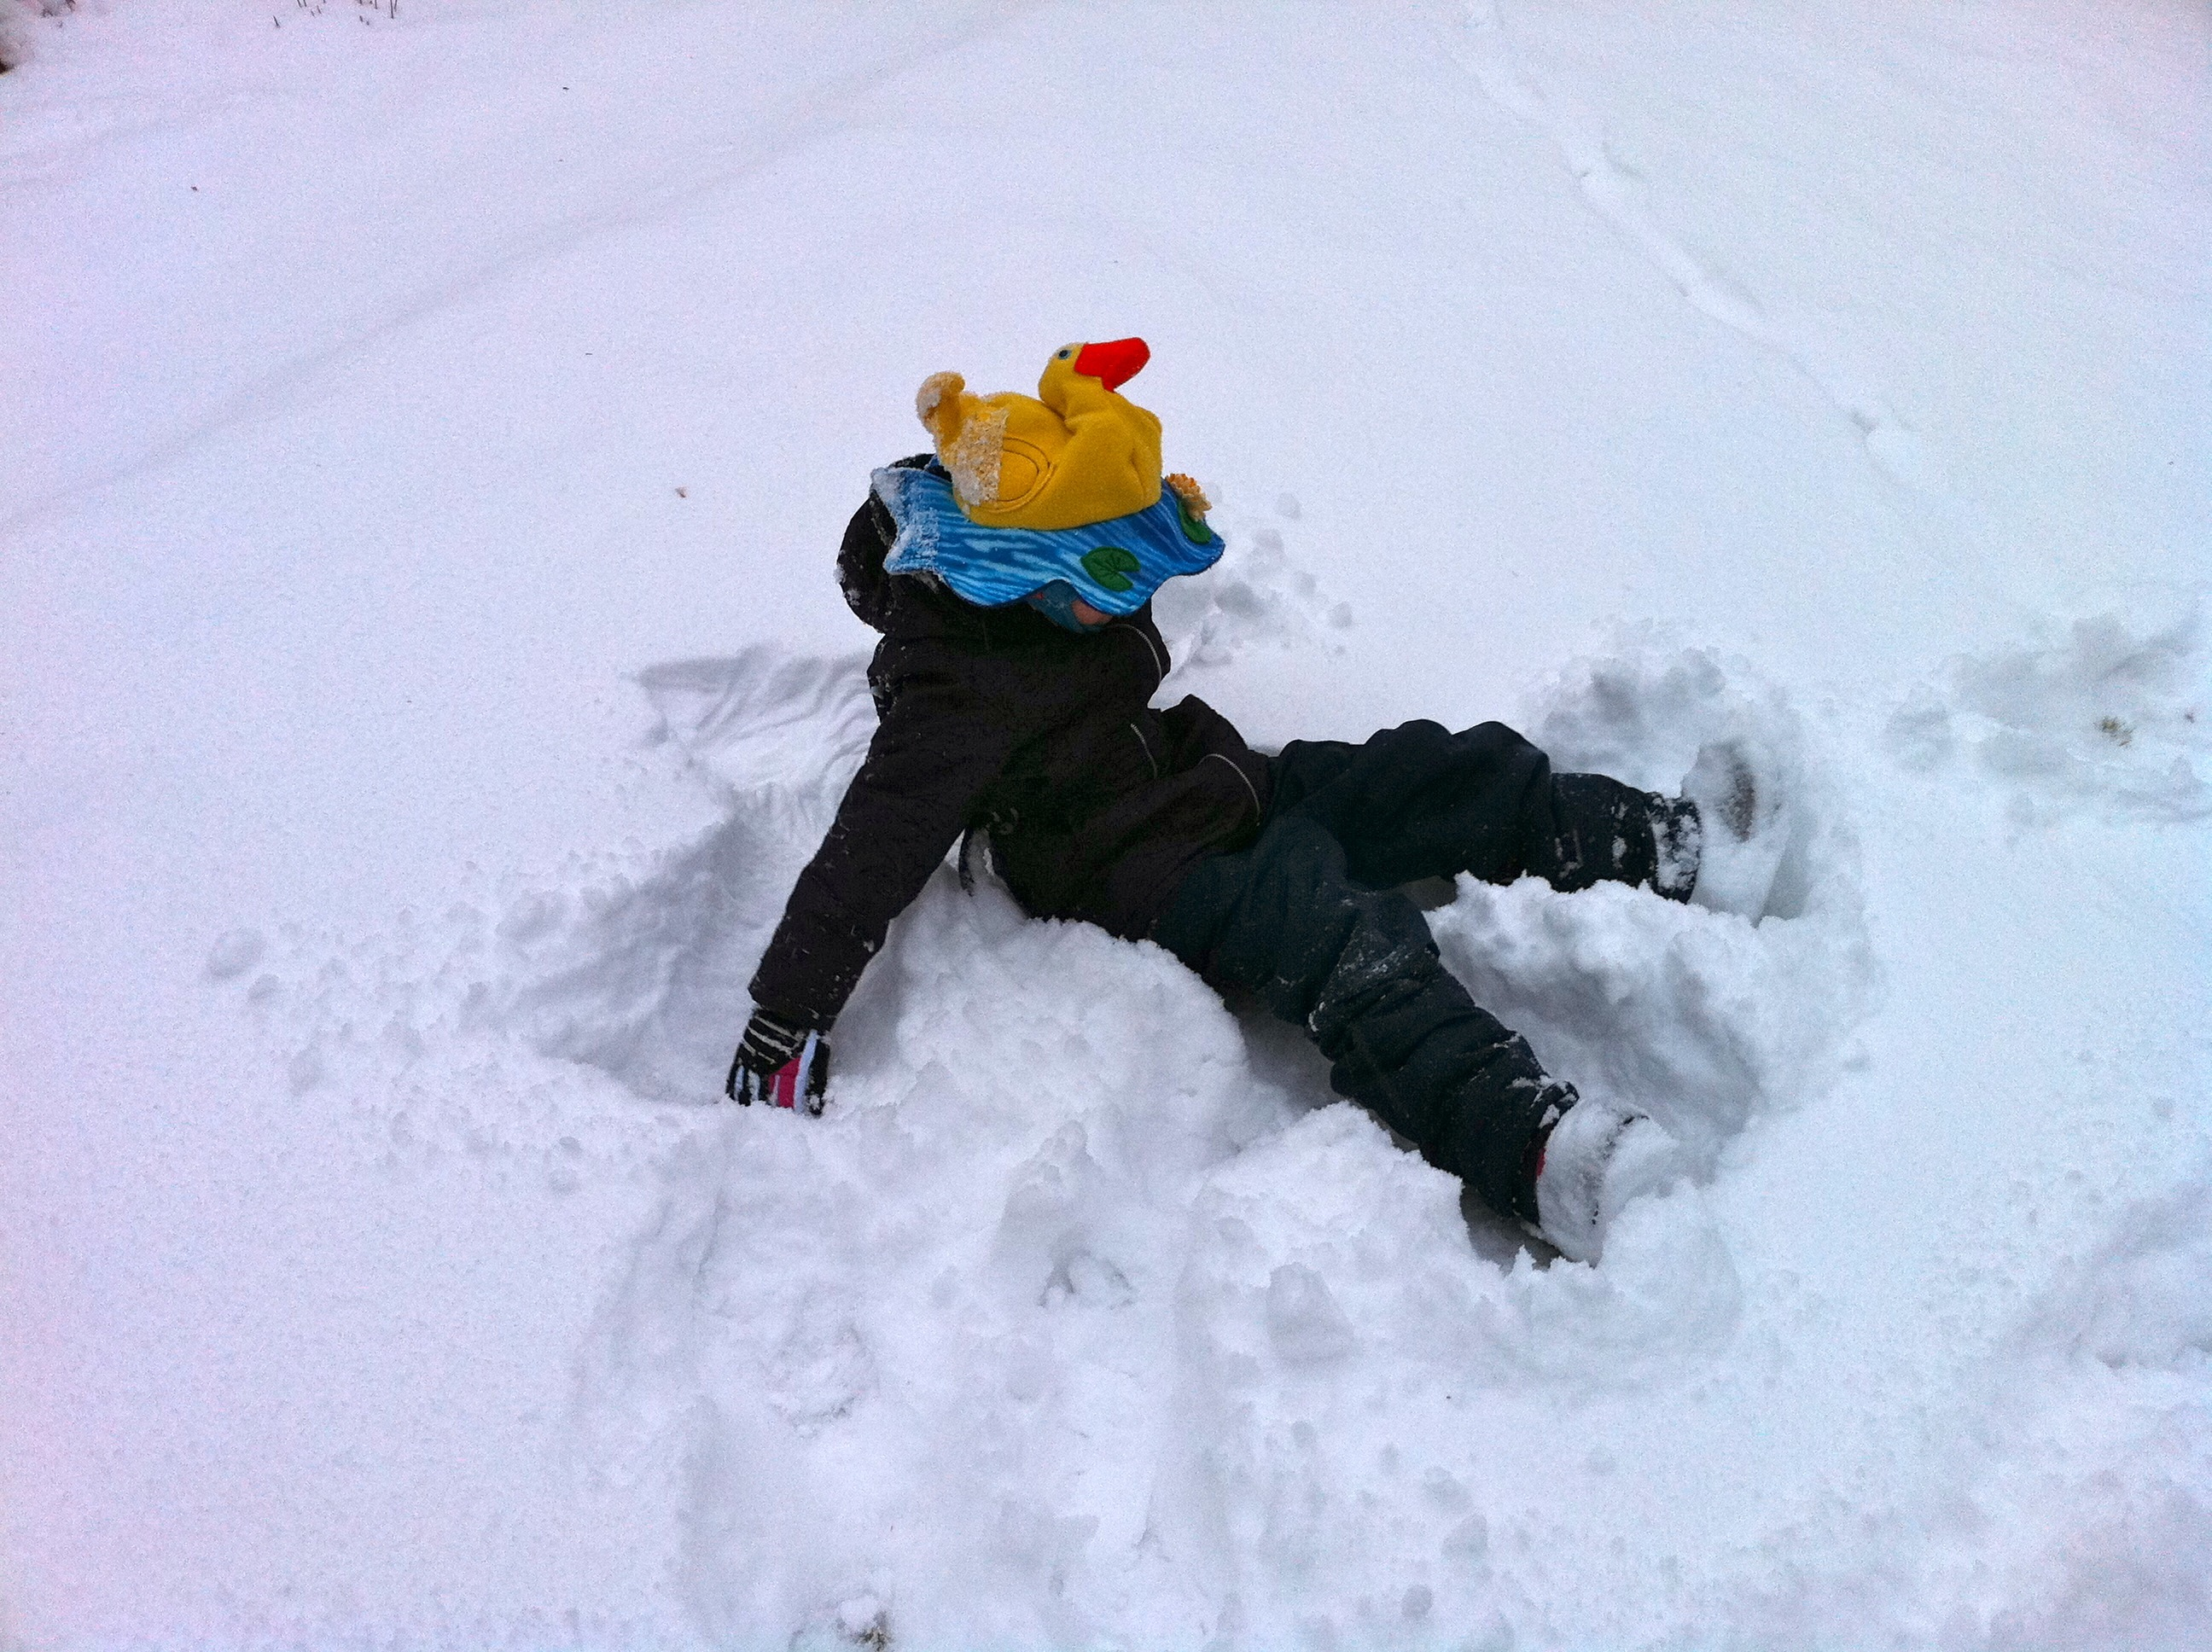 The making of a snow angel